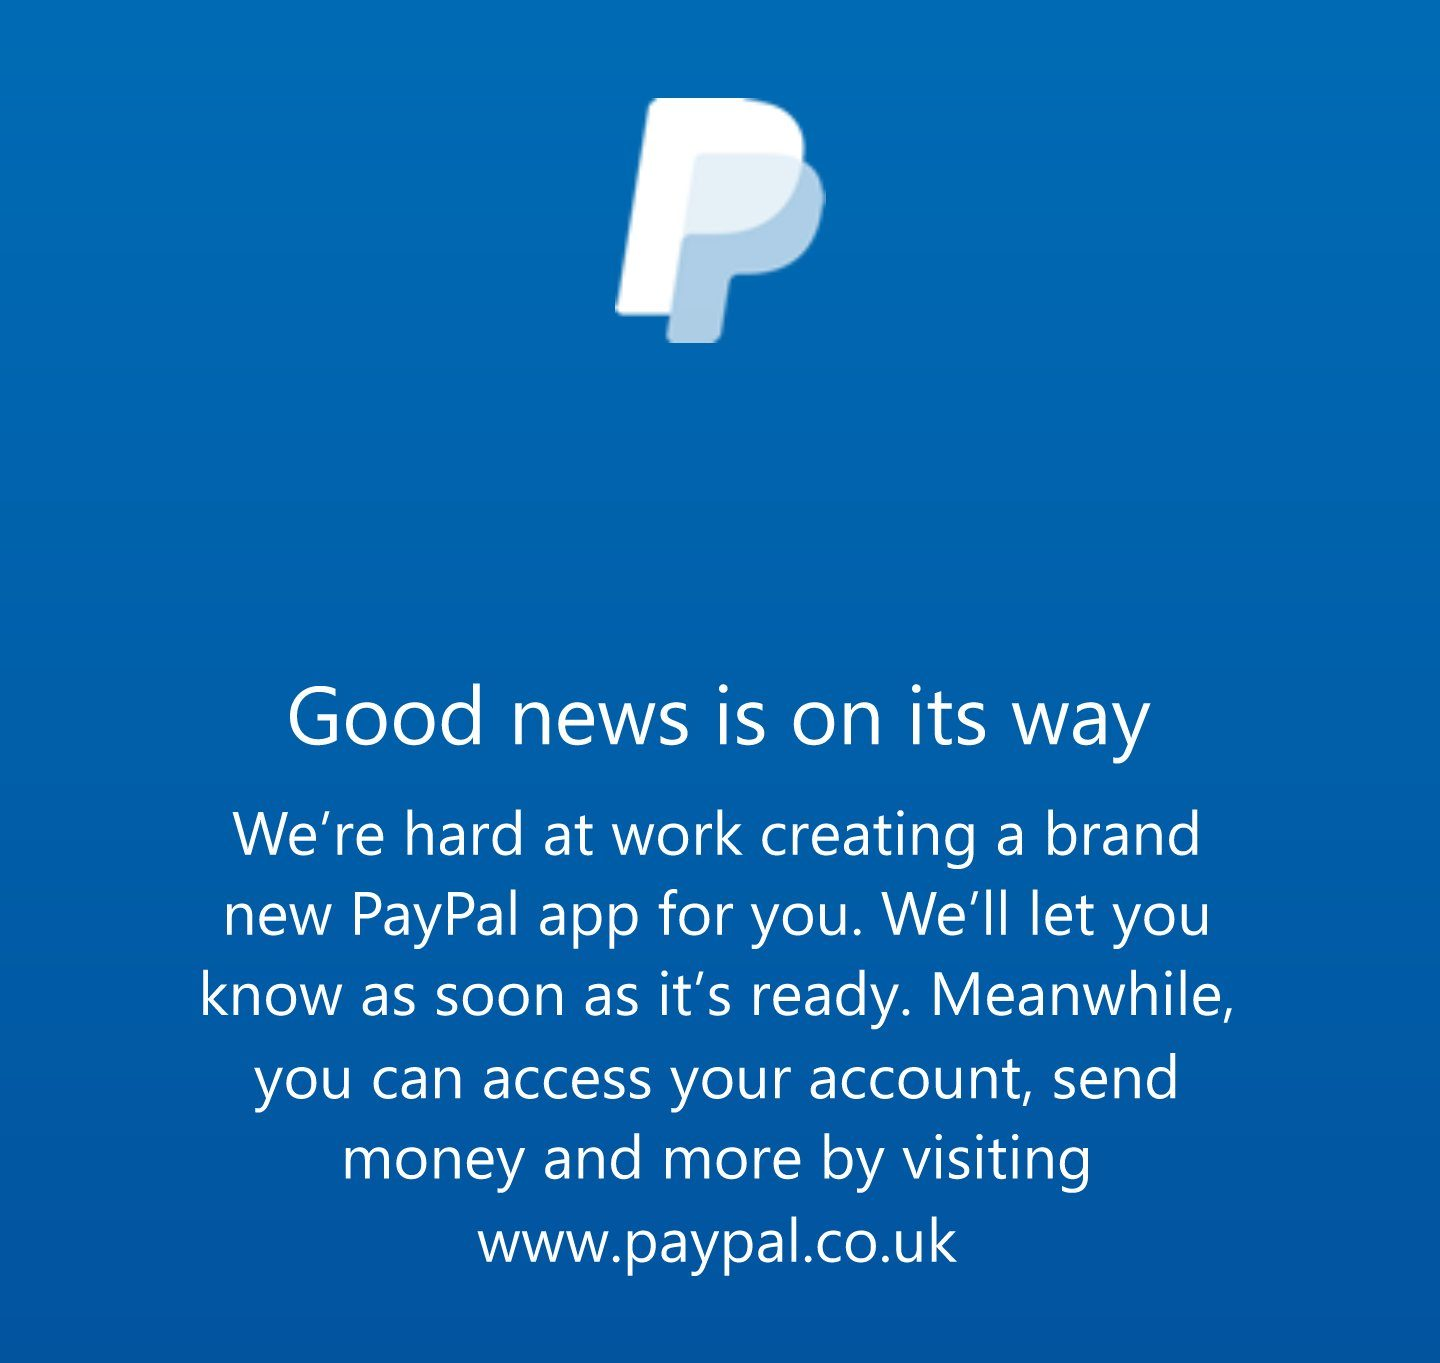 PayPal is apparently working on a new app for Windows Phone